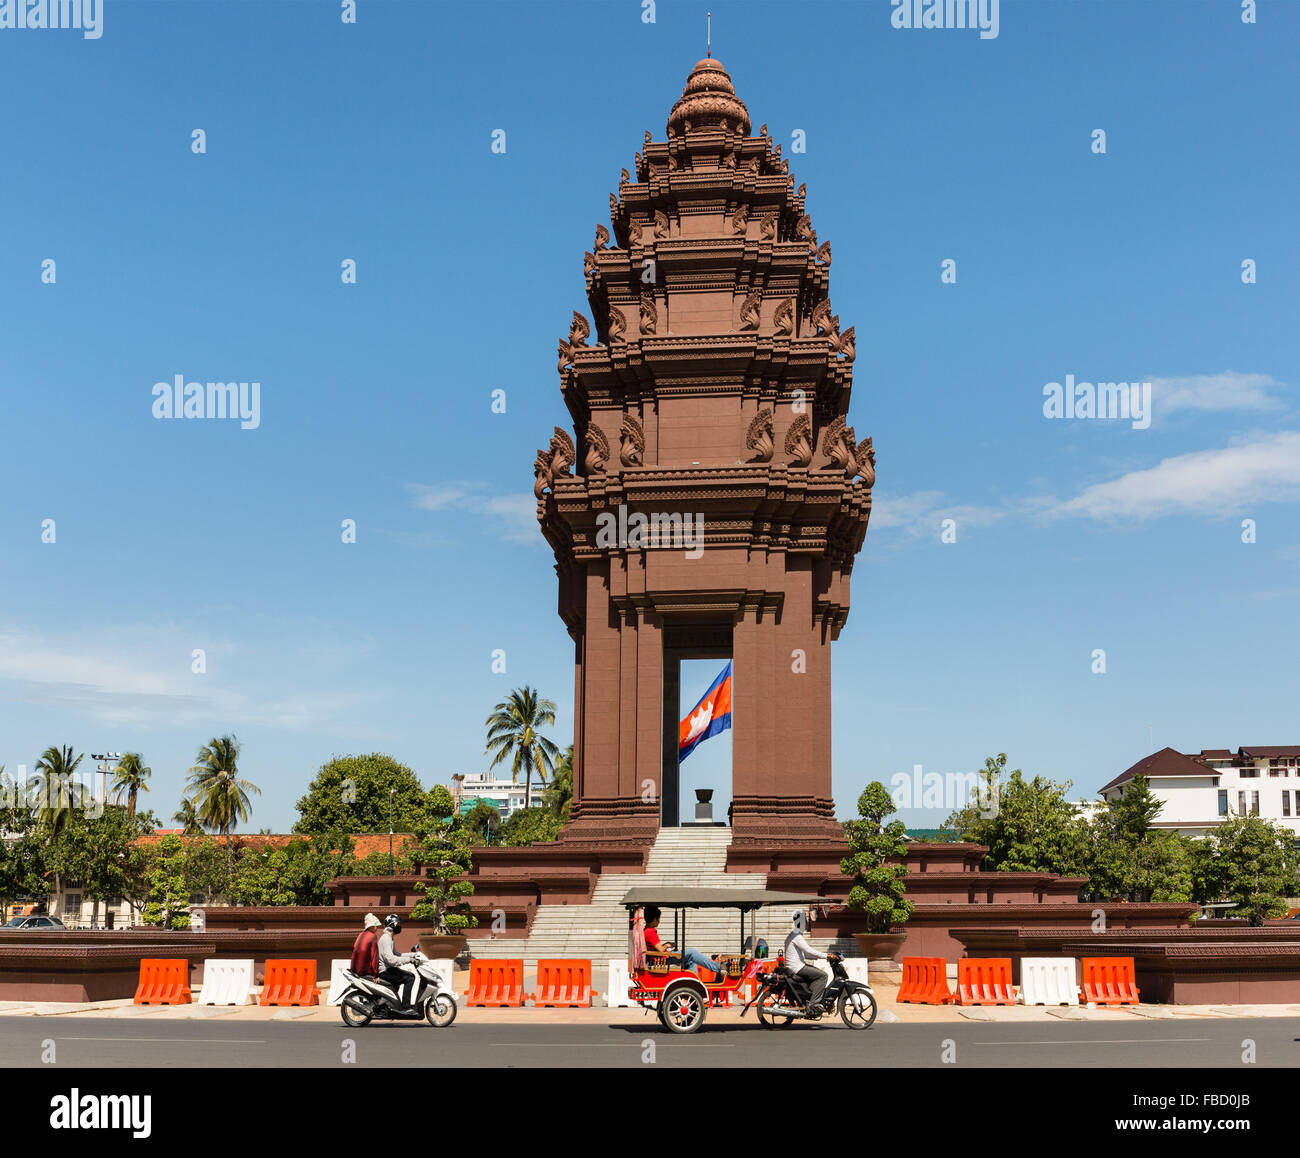 Au rond-point, le Monument de l'indépendance, Tuk Tuk taxi à l'Phnom Penh, Cambodge Photo Stock